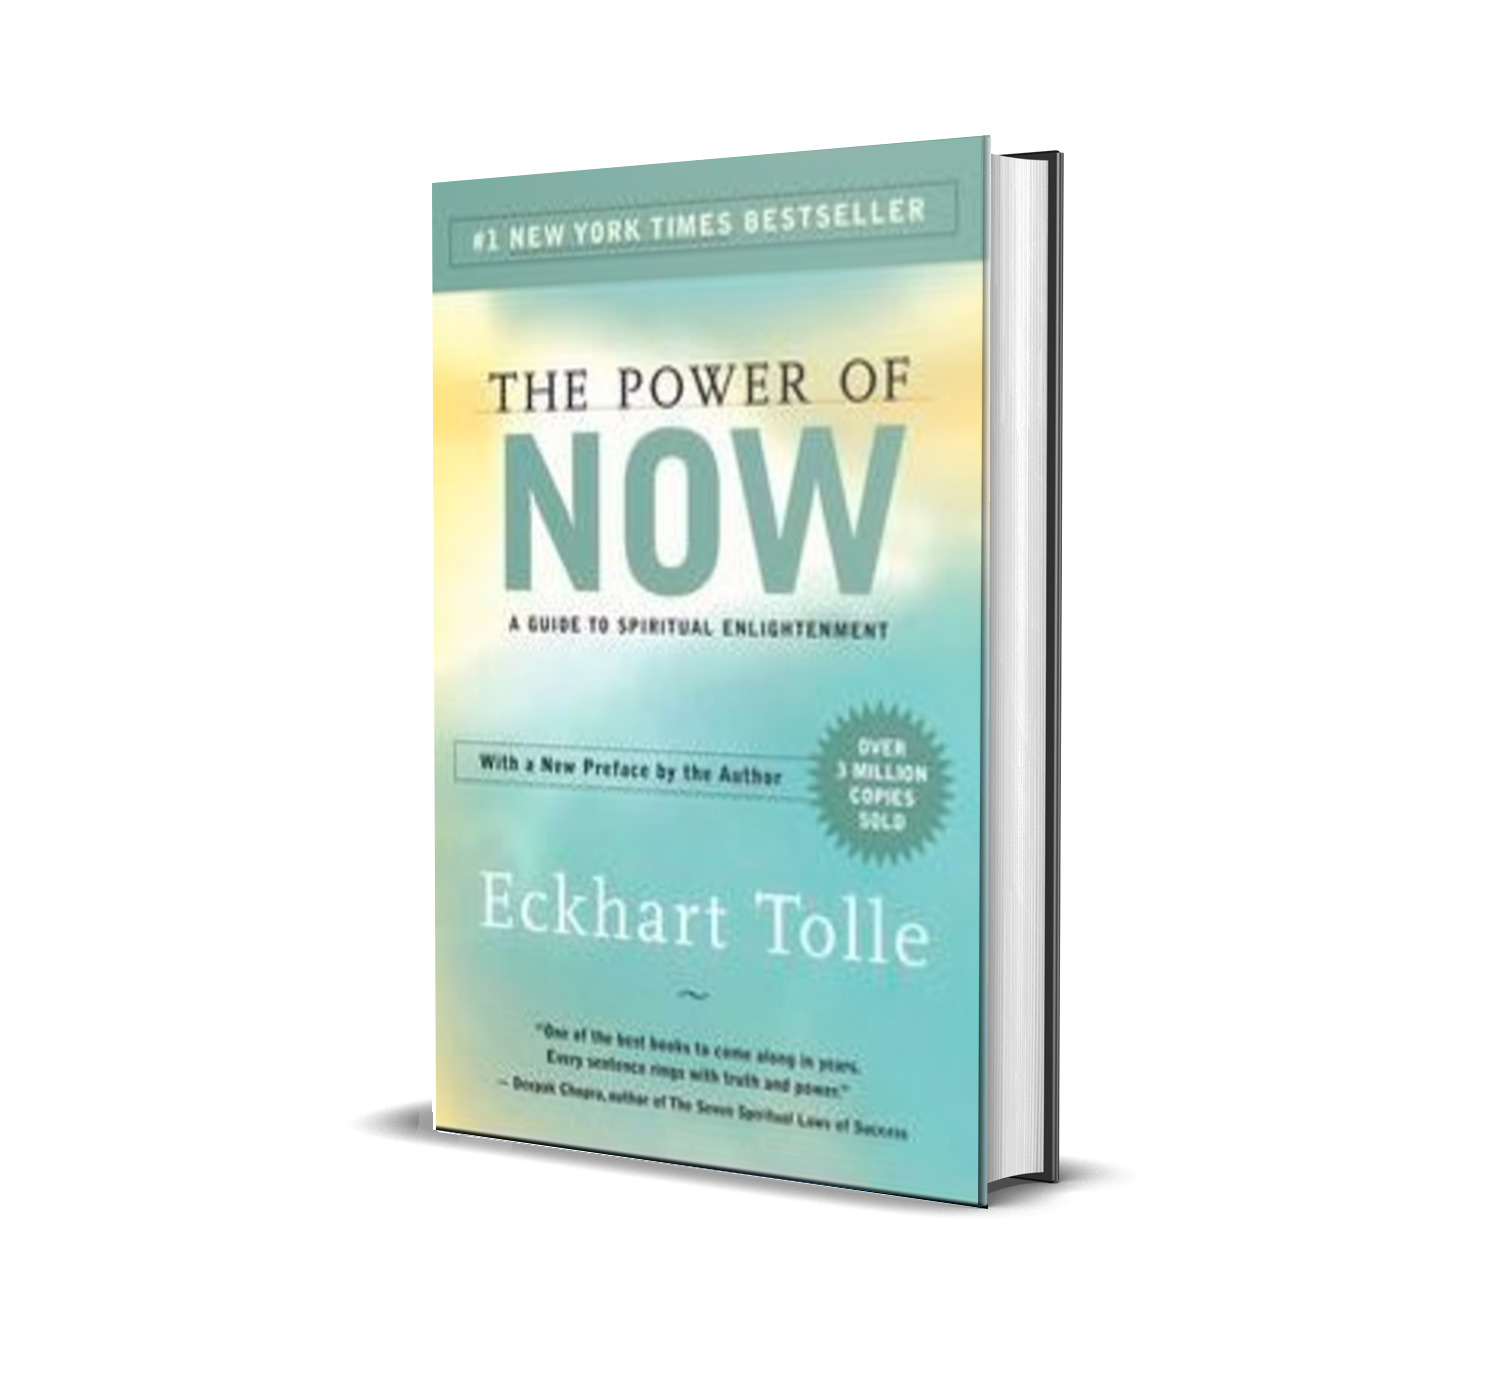 The Power of Now: By Eckhart Tolle